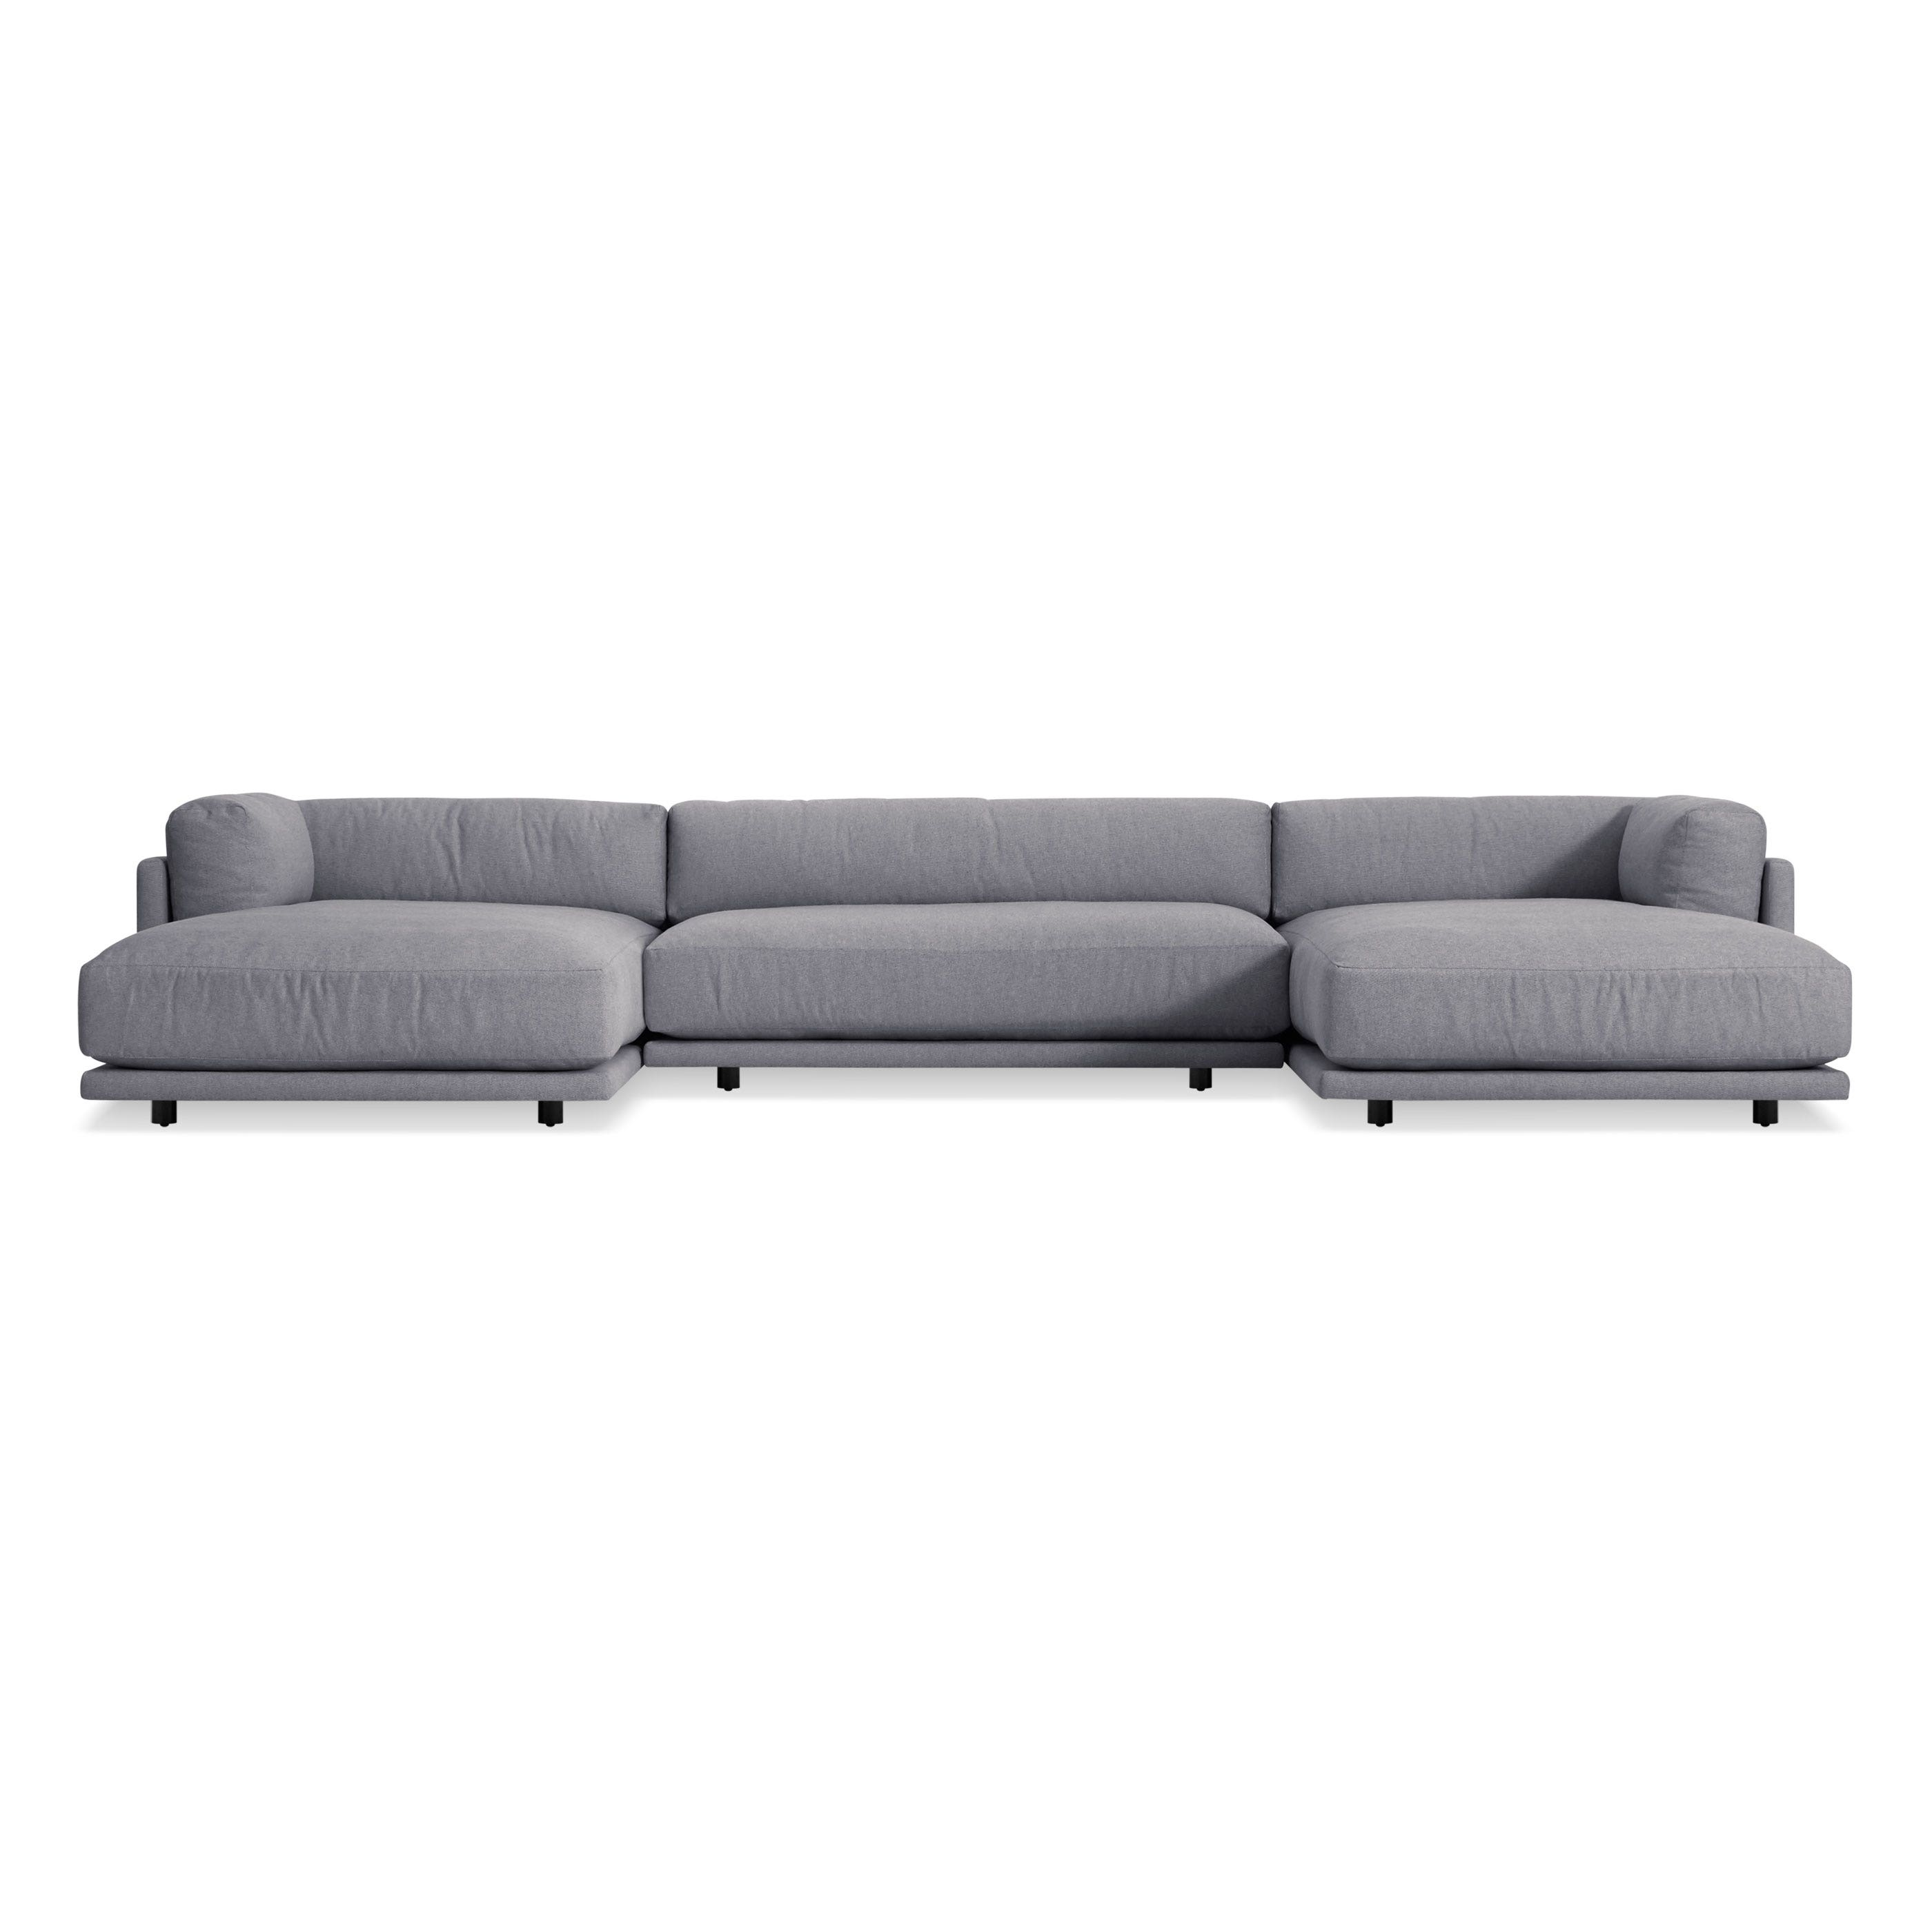 Sunday U-Shaped Sectional Sofa  sc 1 st  Blu Dot : u shaped sectional couch - Sectionals, Sofas & Couches